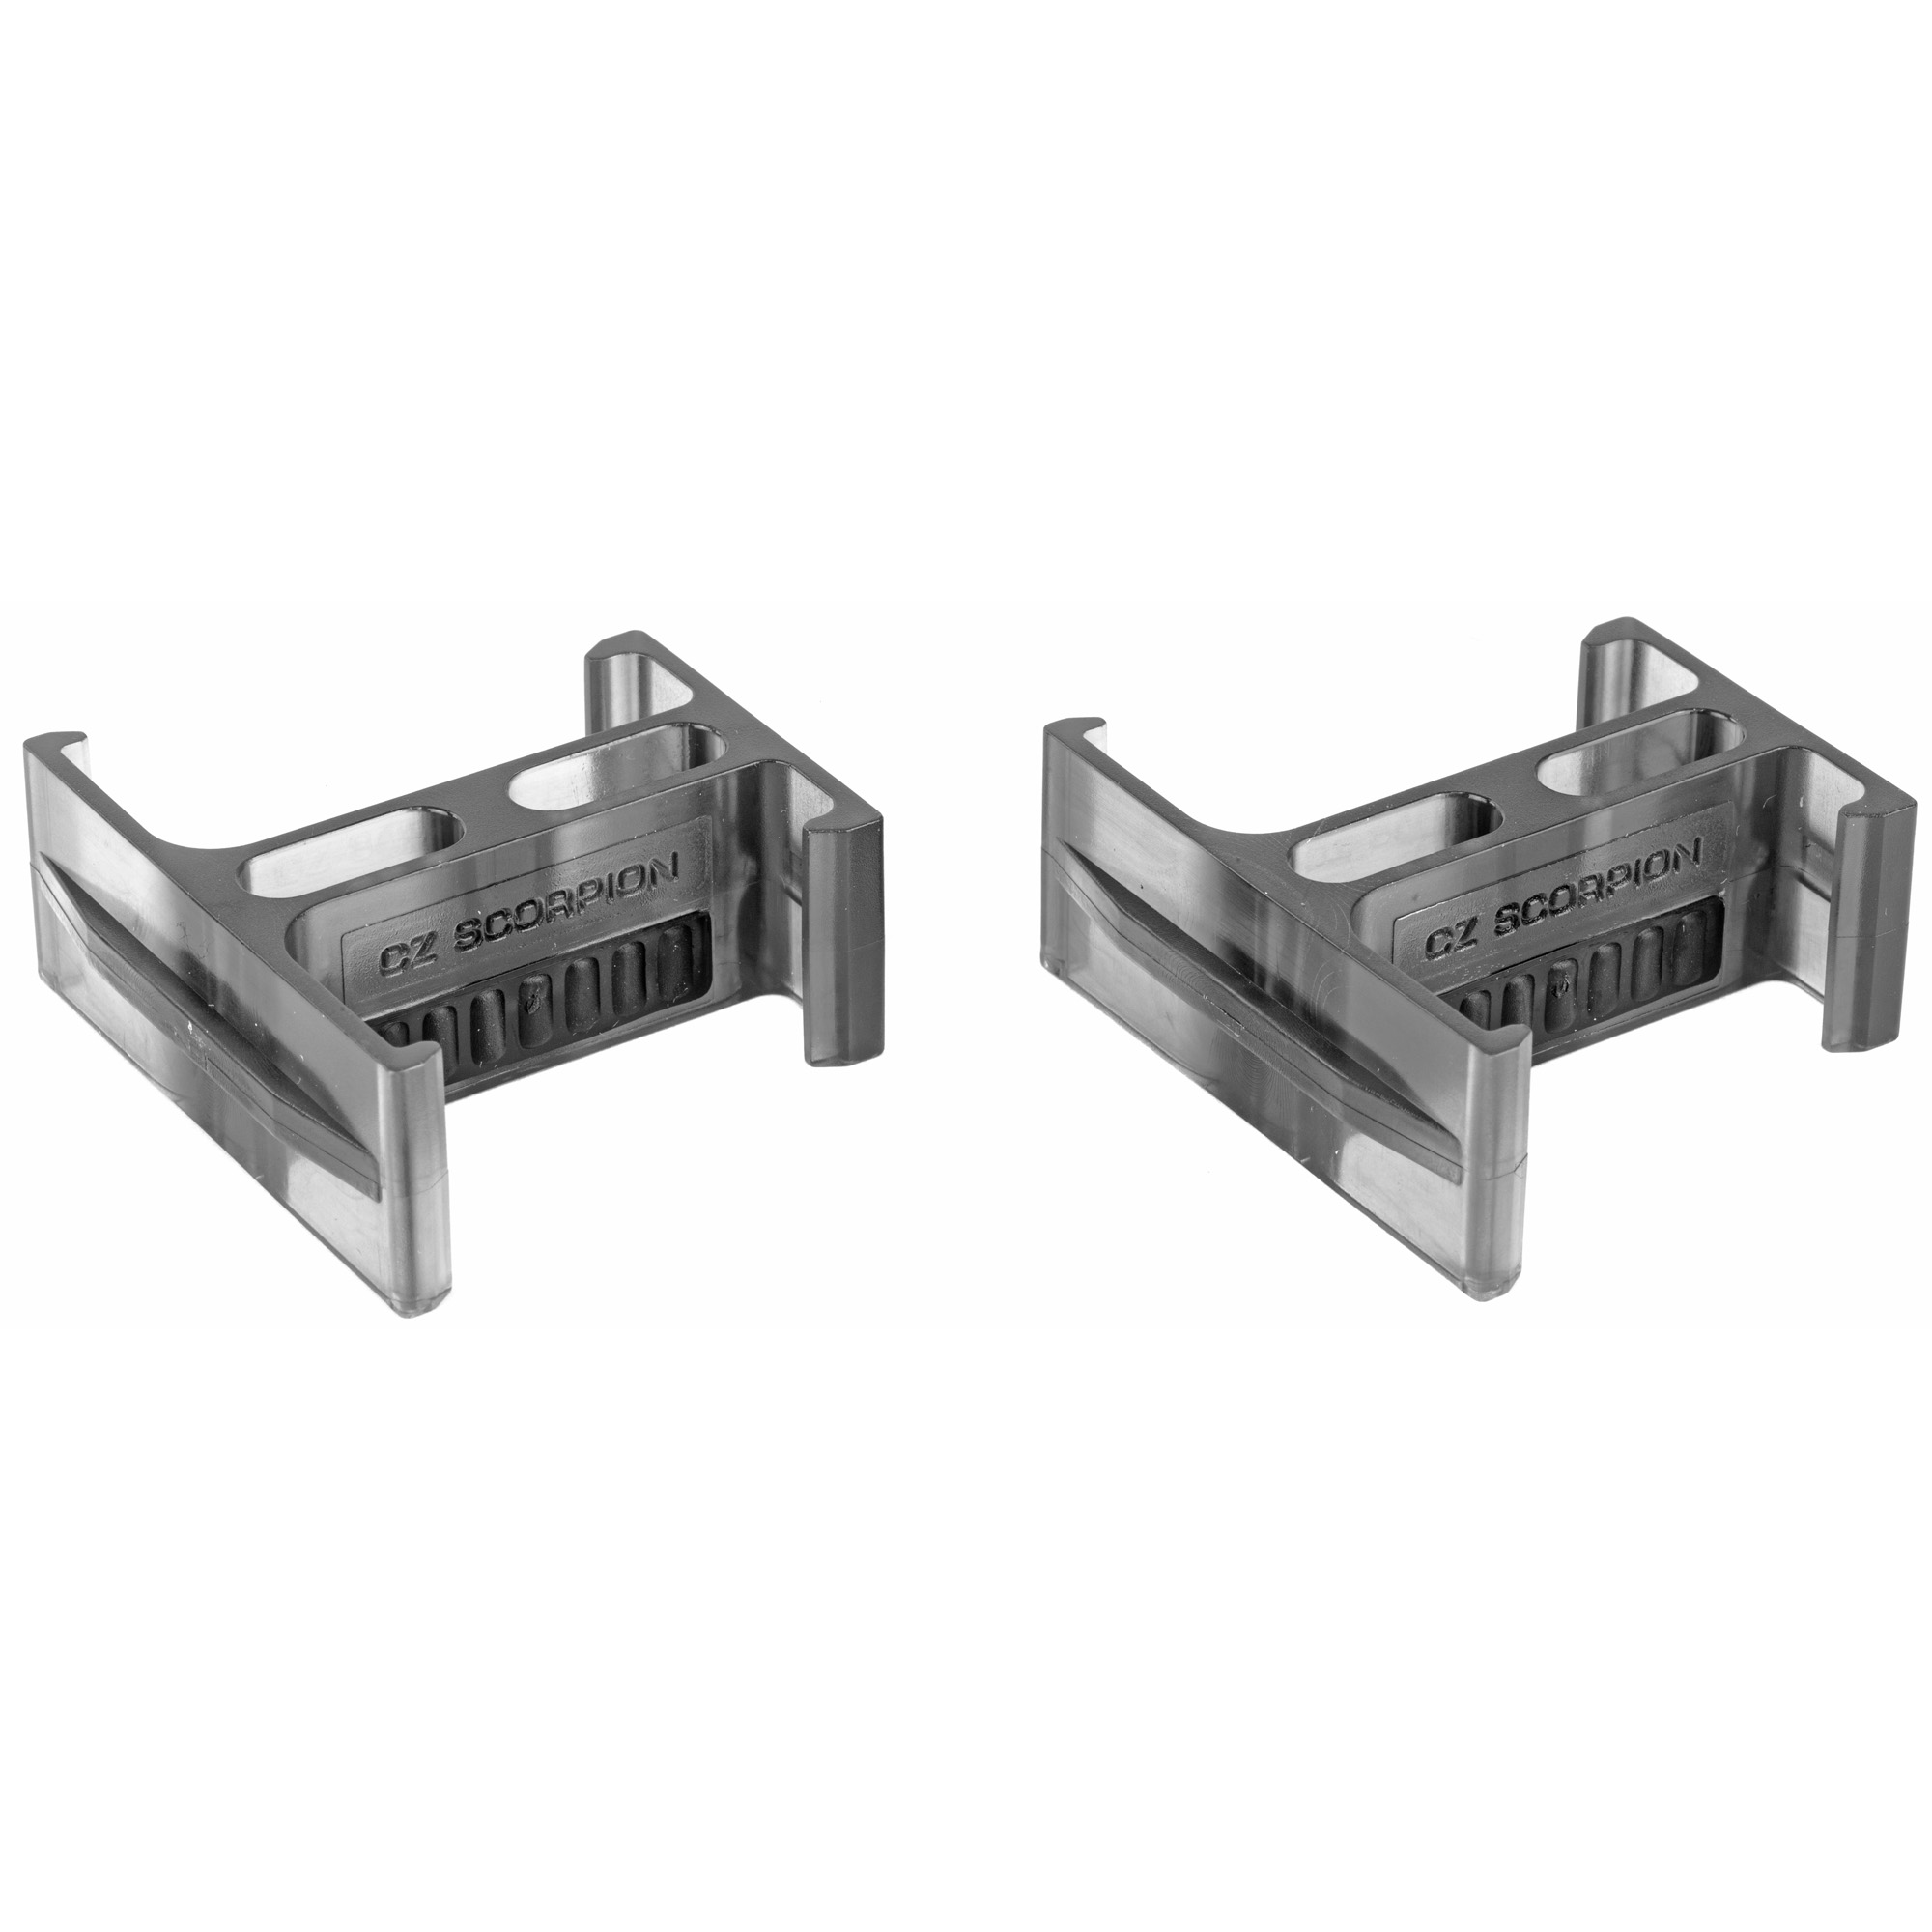 This CZ Scorpion magazine coupler set contains 2 magazine couplers that are required to couple 2 magazines.